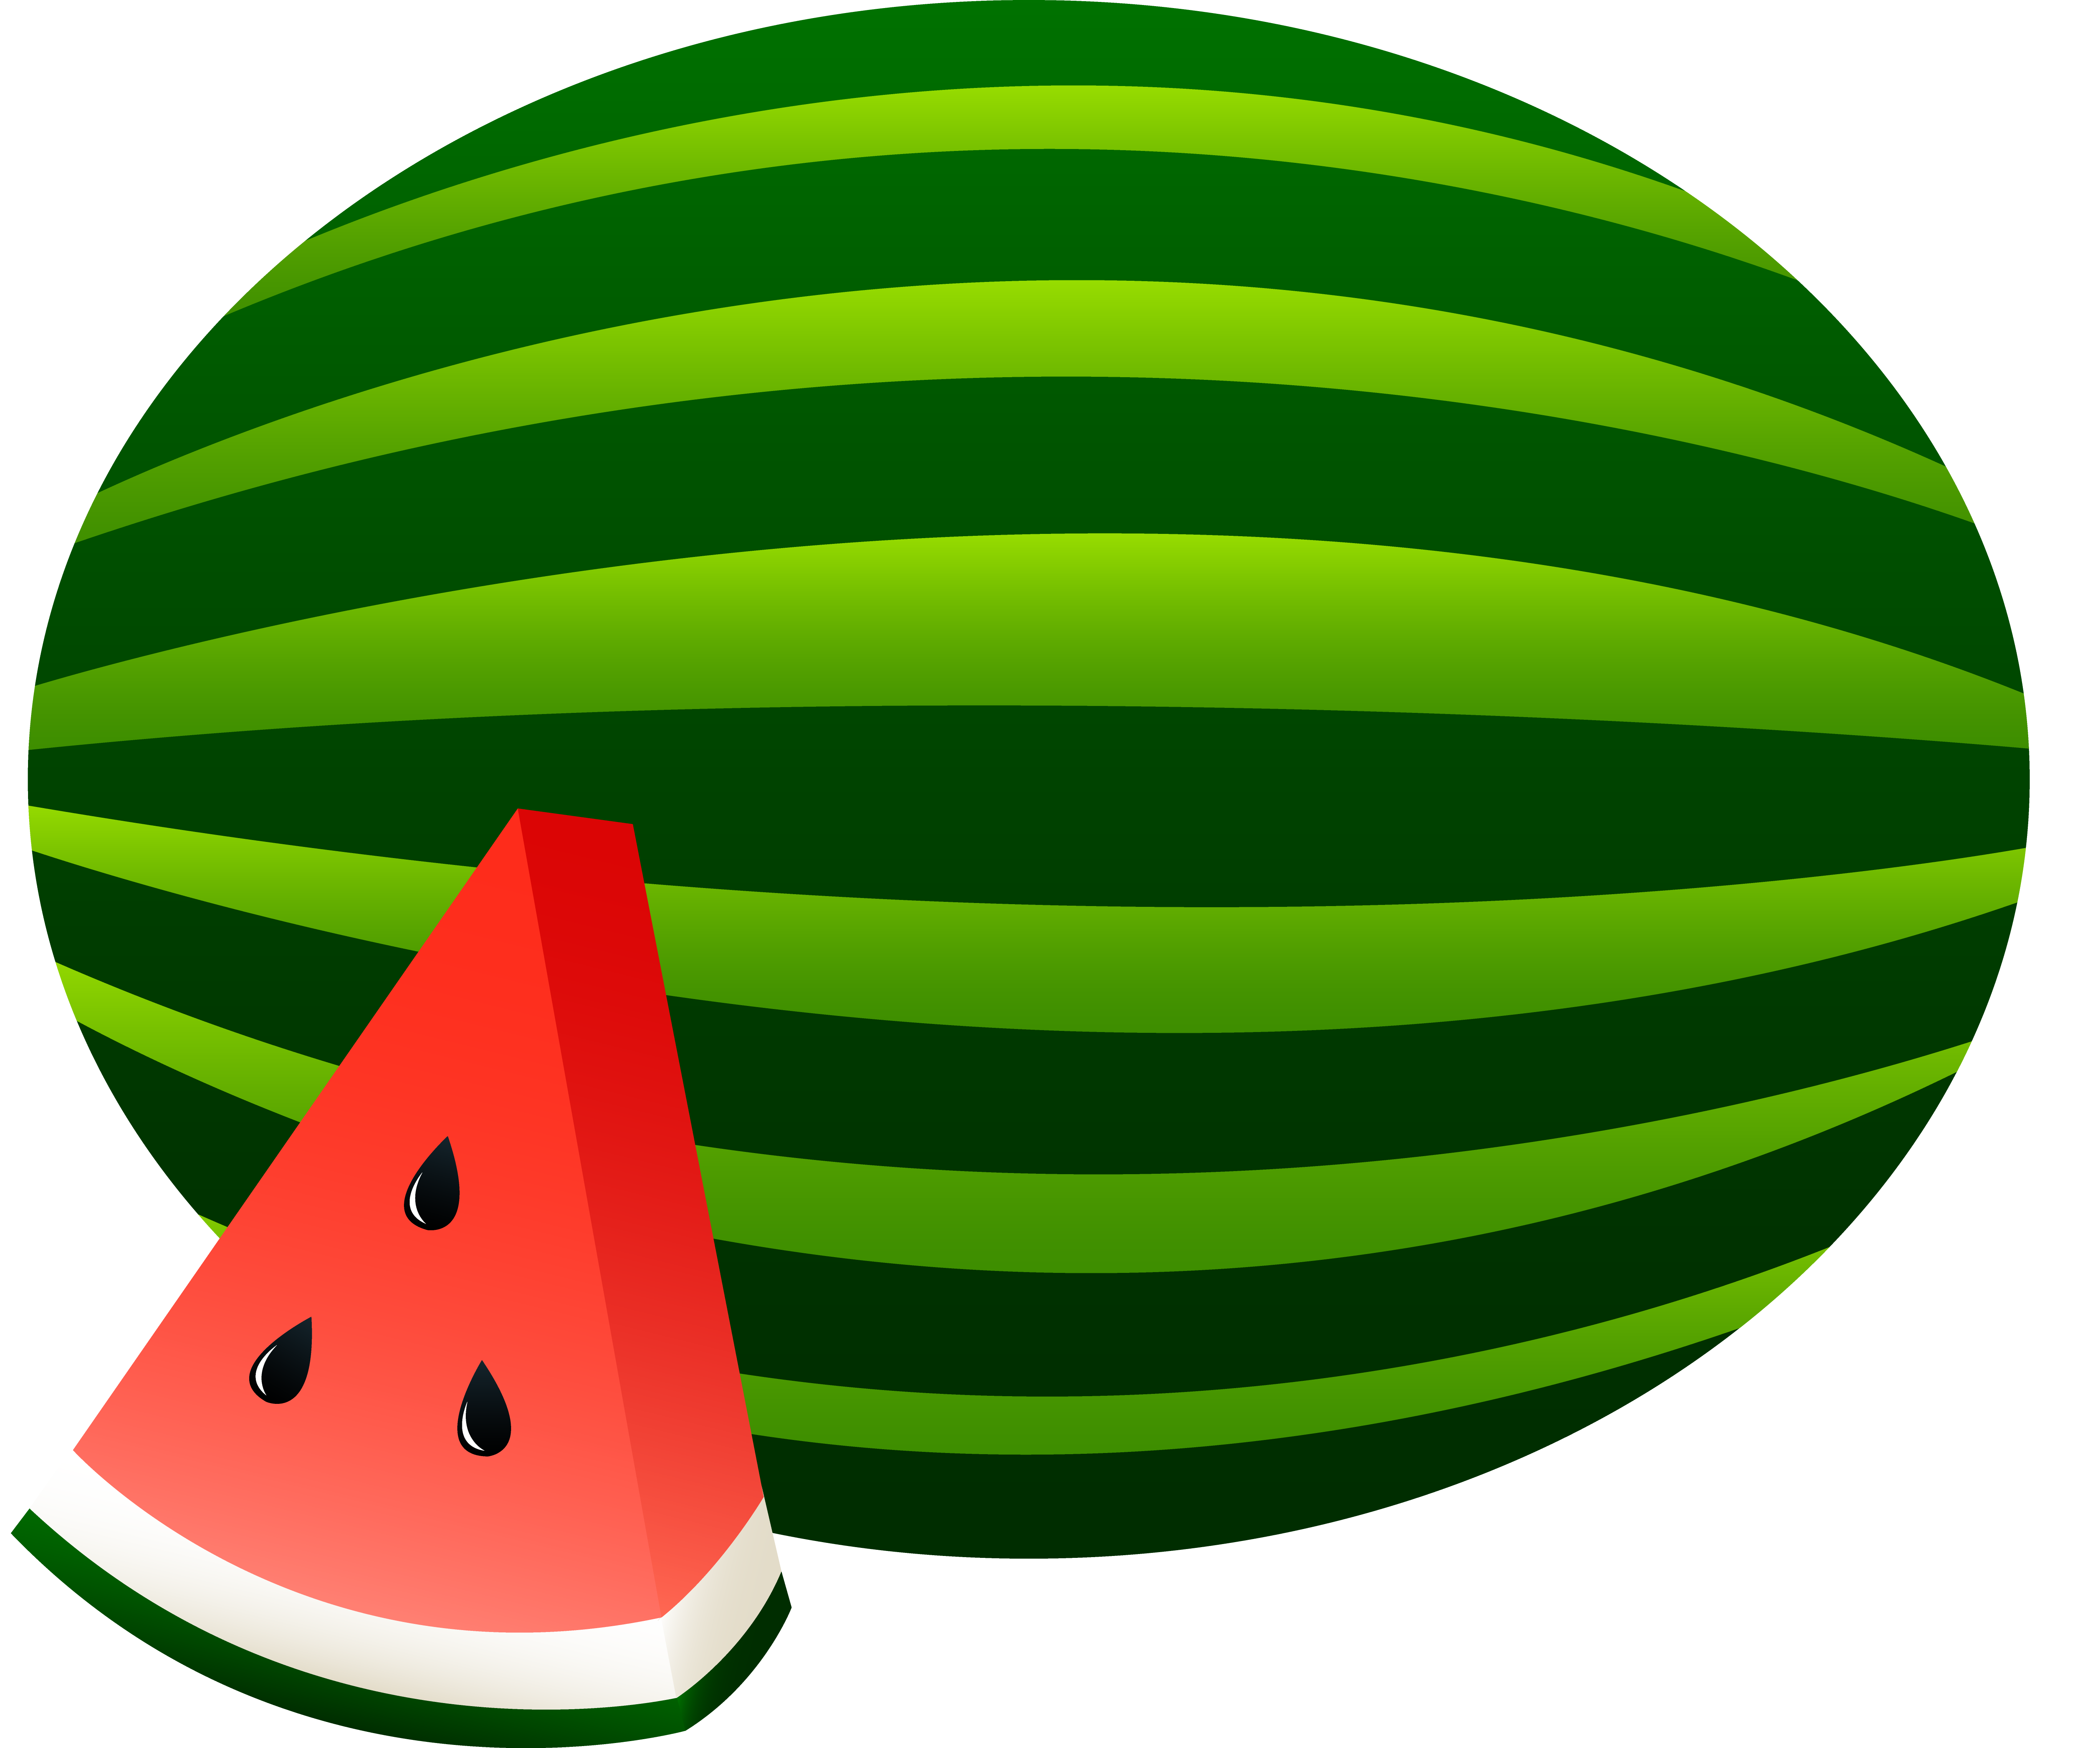 Watermelon Whole and Slice - Free Clip A-Watermelon Whole and Slice - Free Clip Art-11